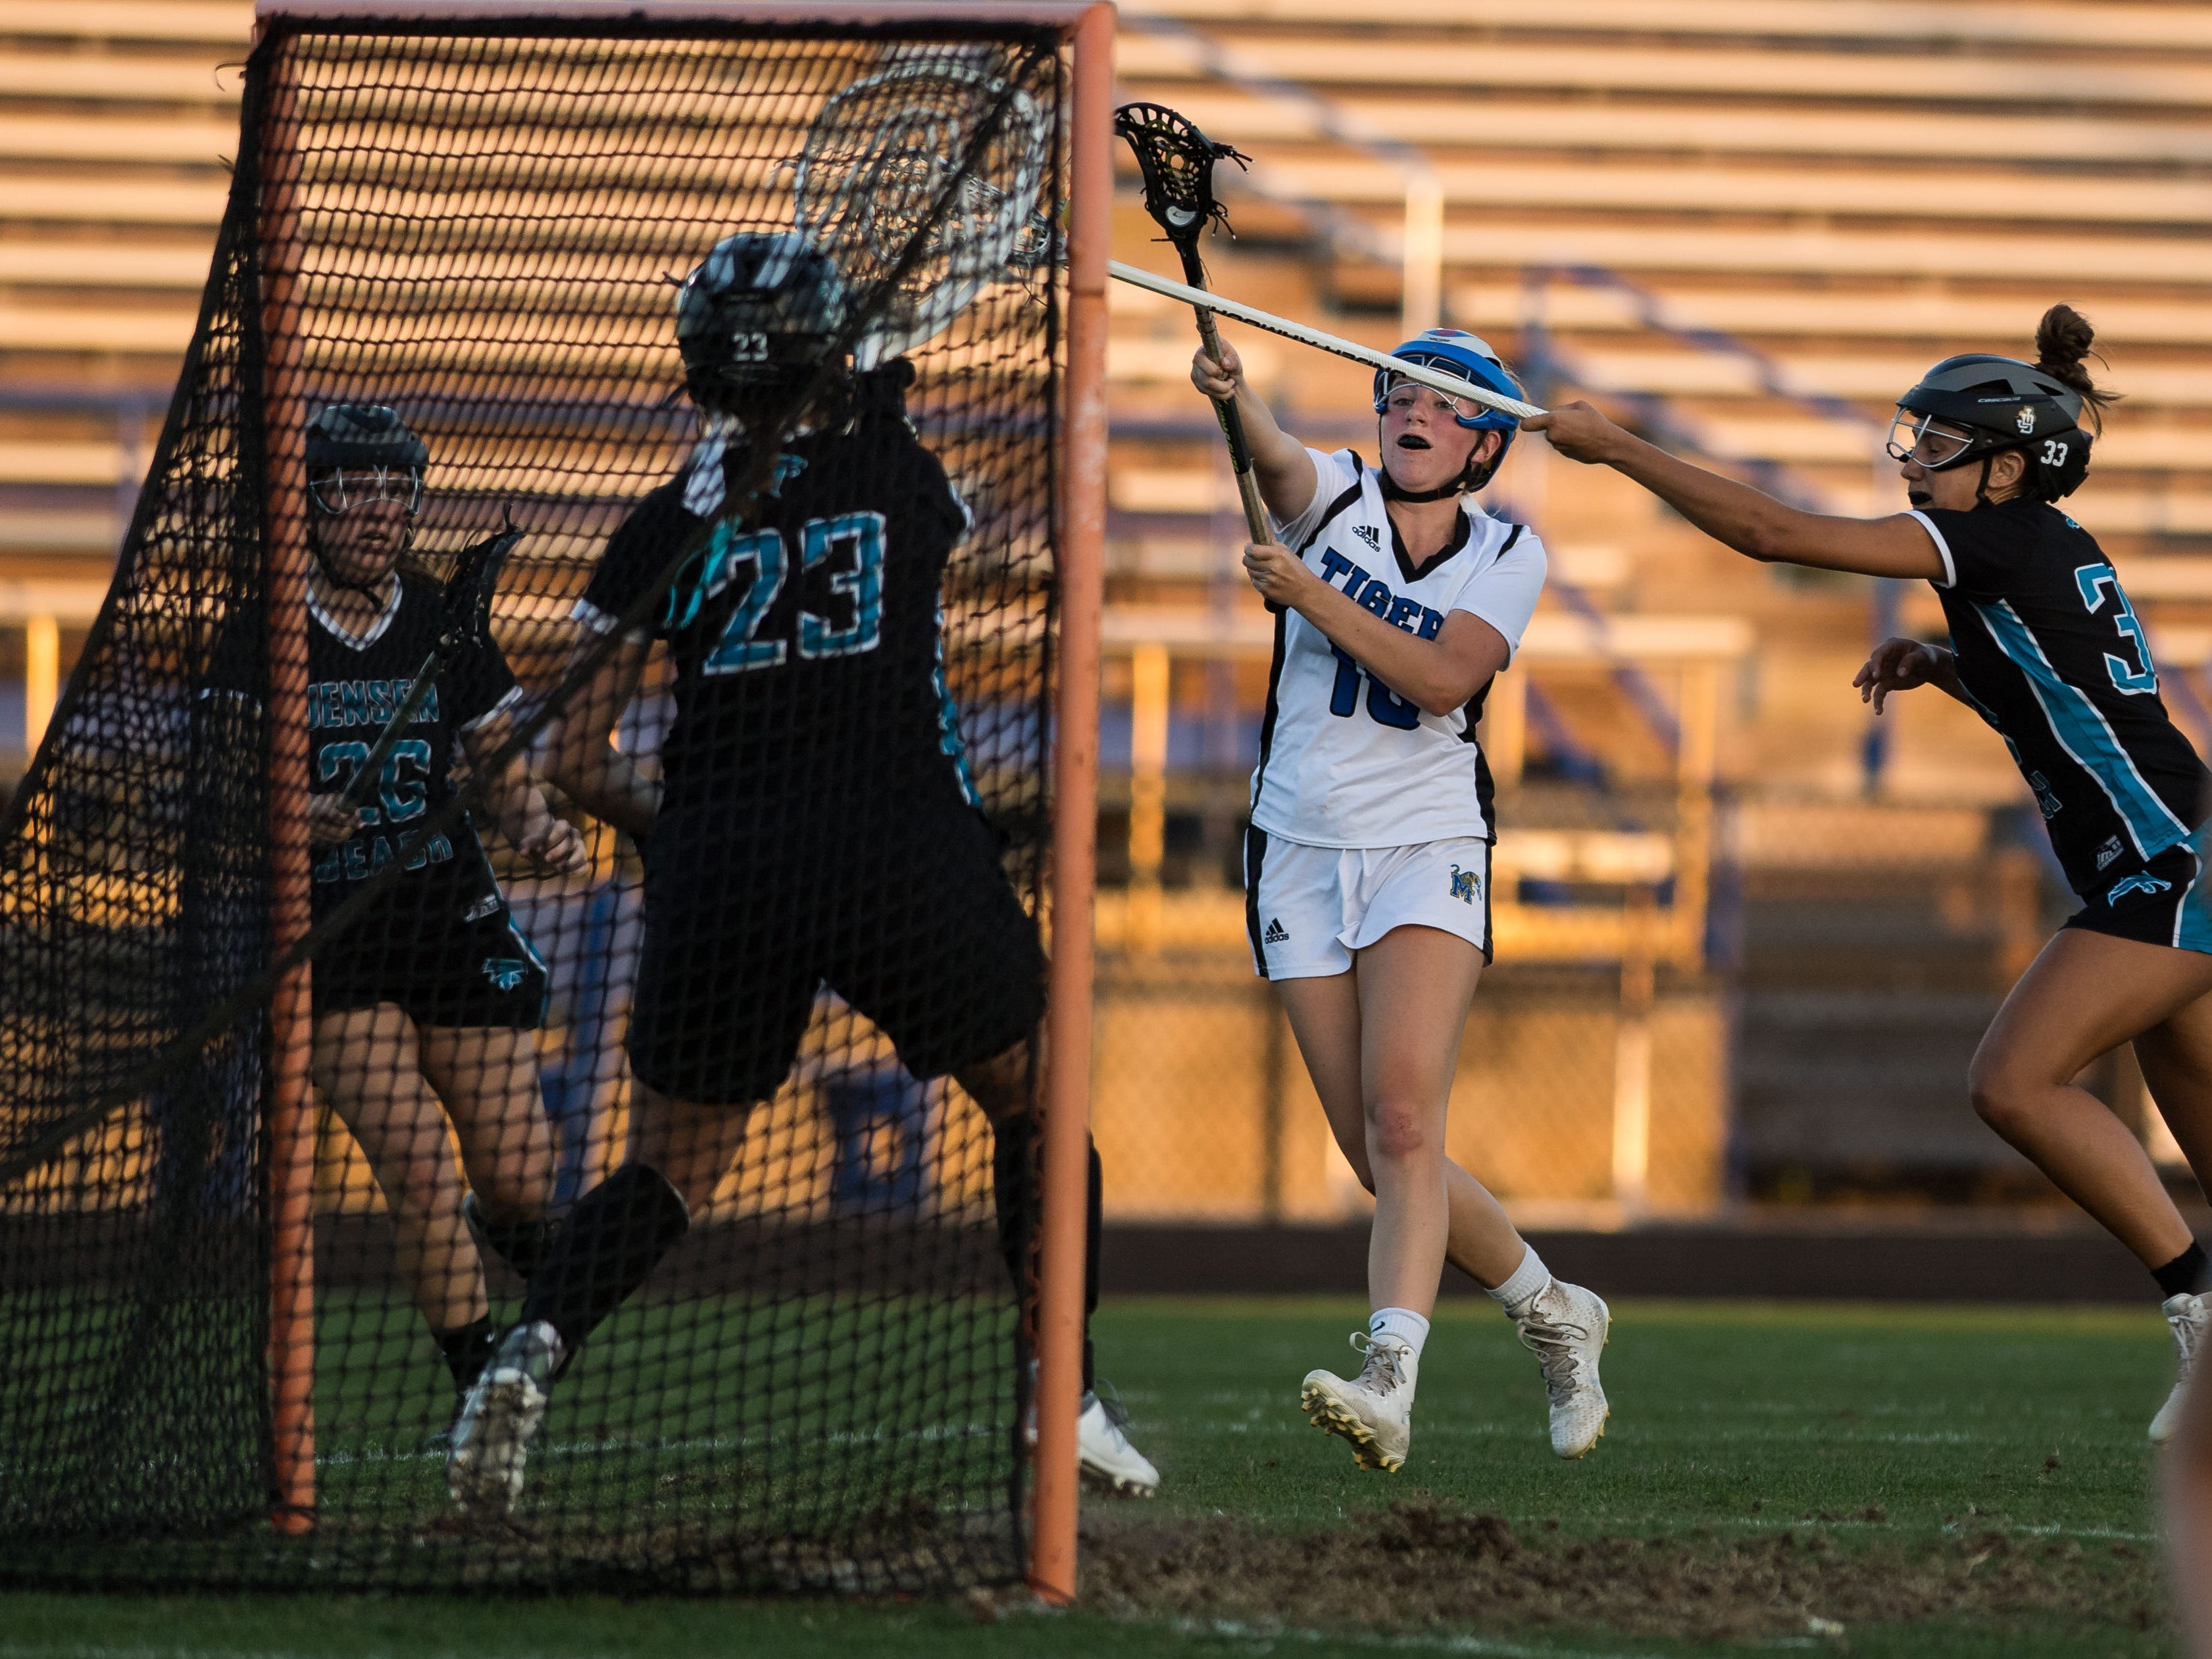 Martin County's Lauren Hooks (center) scores past Jensen Beach goalkeeper Rachel Dionne on a free-position shot, as Sandy Edwards reaches in to defend at right, during the second half of the high school girls lacrosse game Thursday, March 21, 2019, at Martin County High School in Stuart.